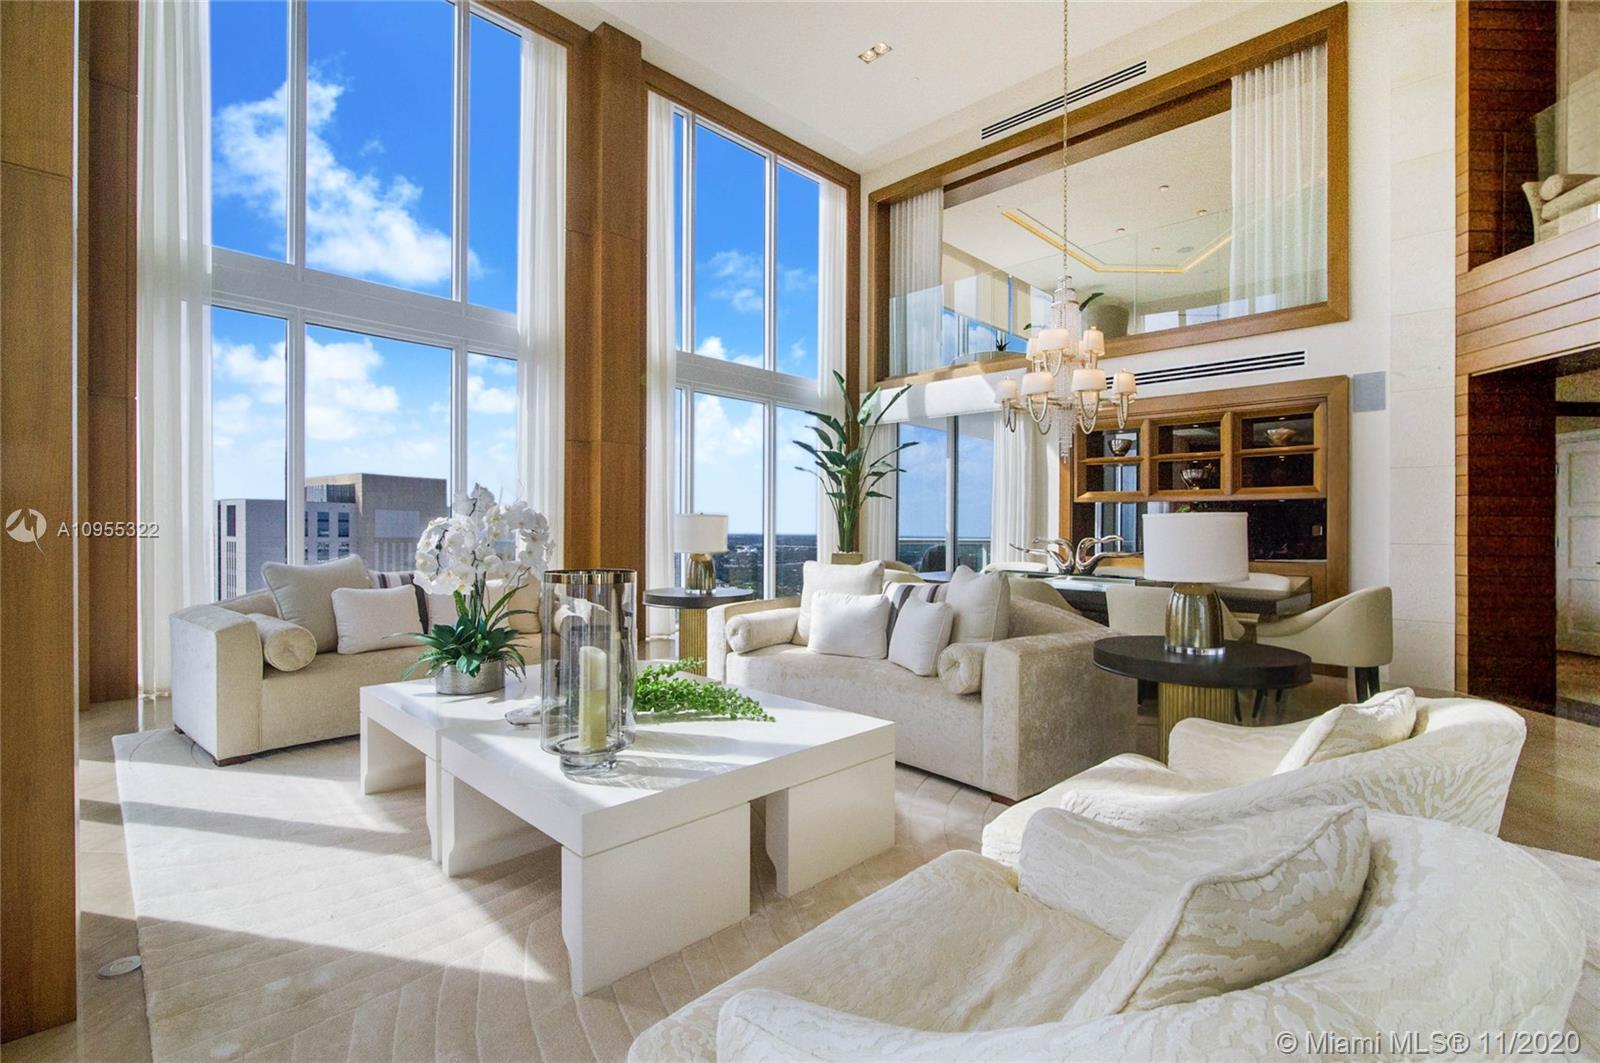 This uniquely designed contemporary condominium situated along the banks of the New River in Ft Laud